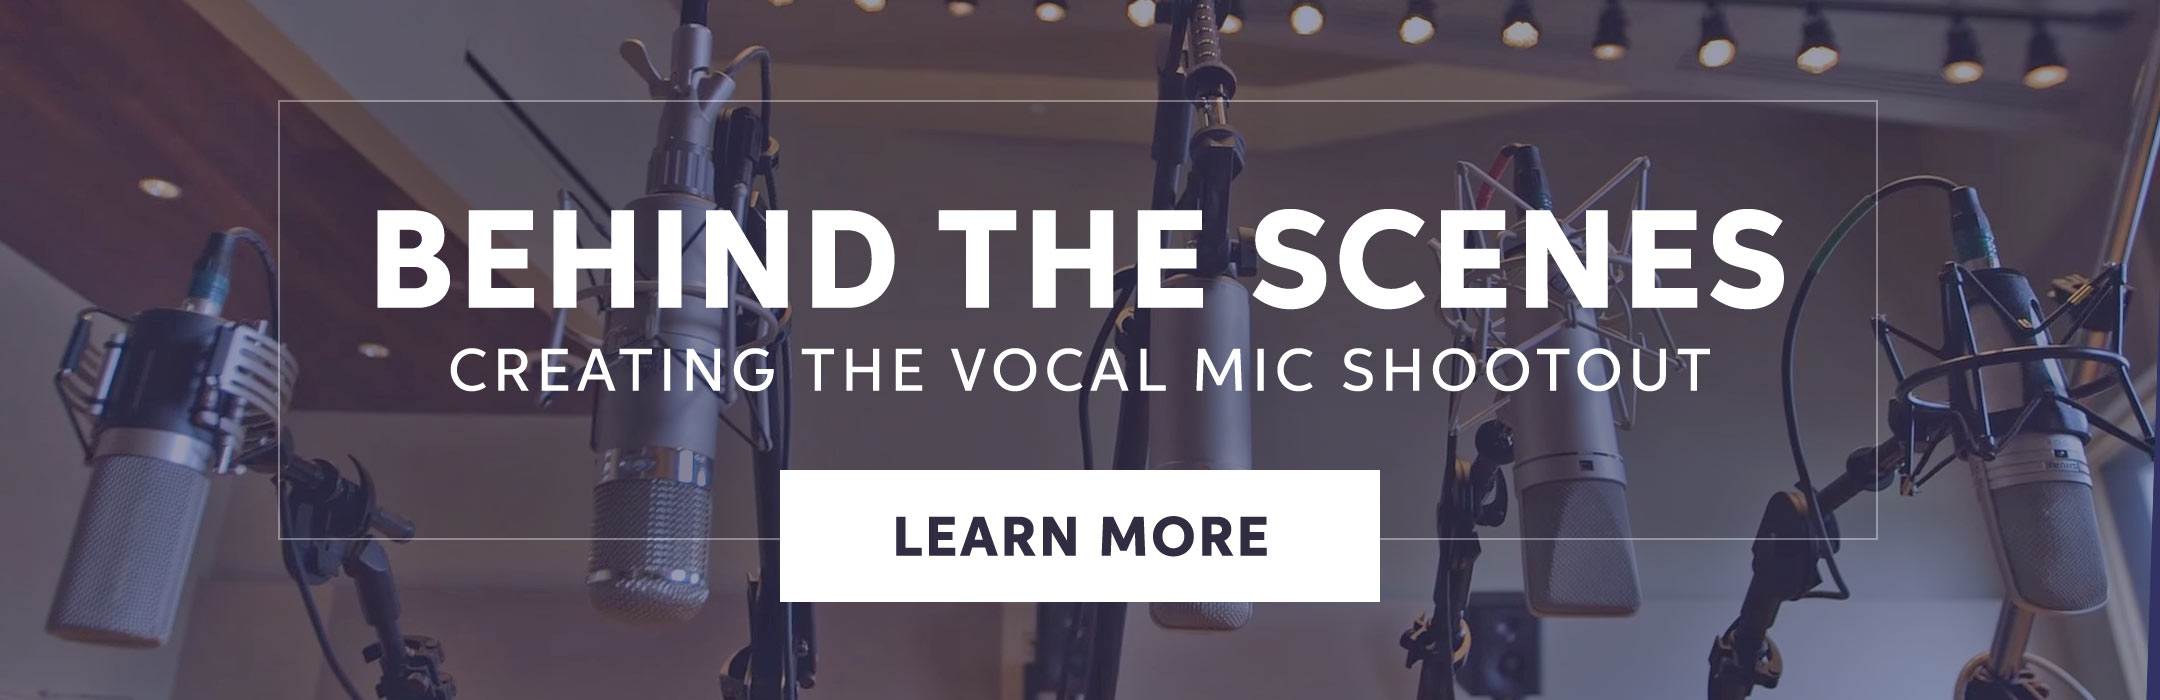 Behind the Scenes: Creating the Vocal Mic Shootout